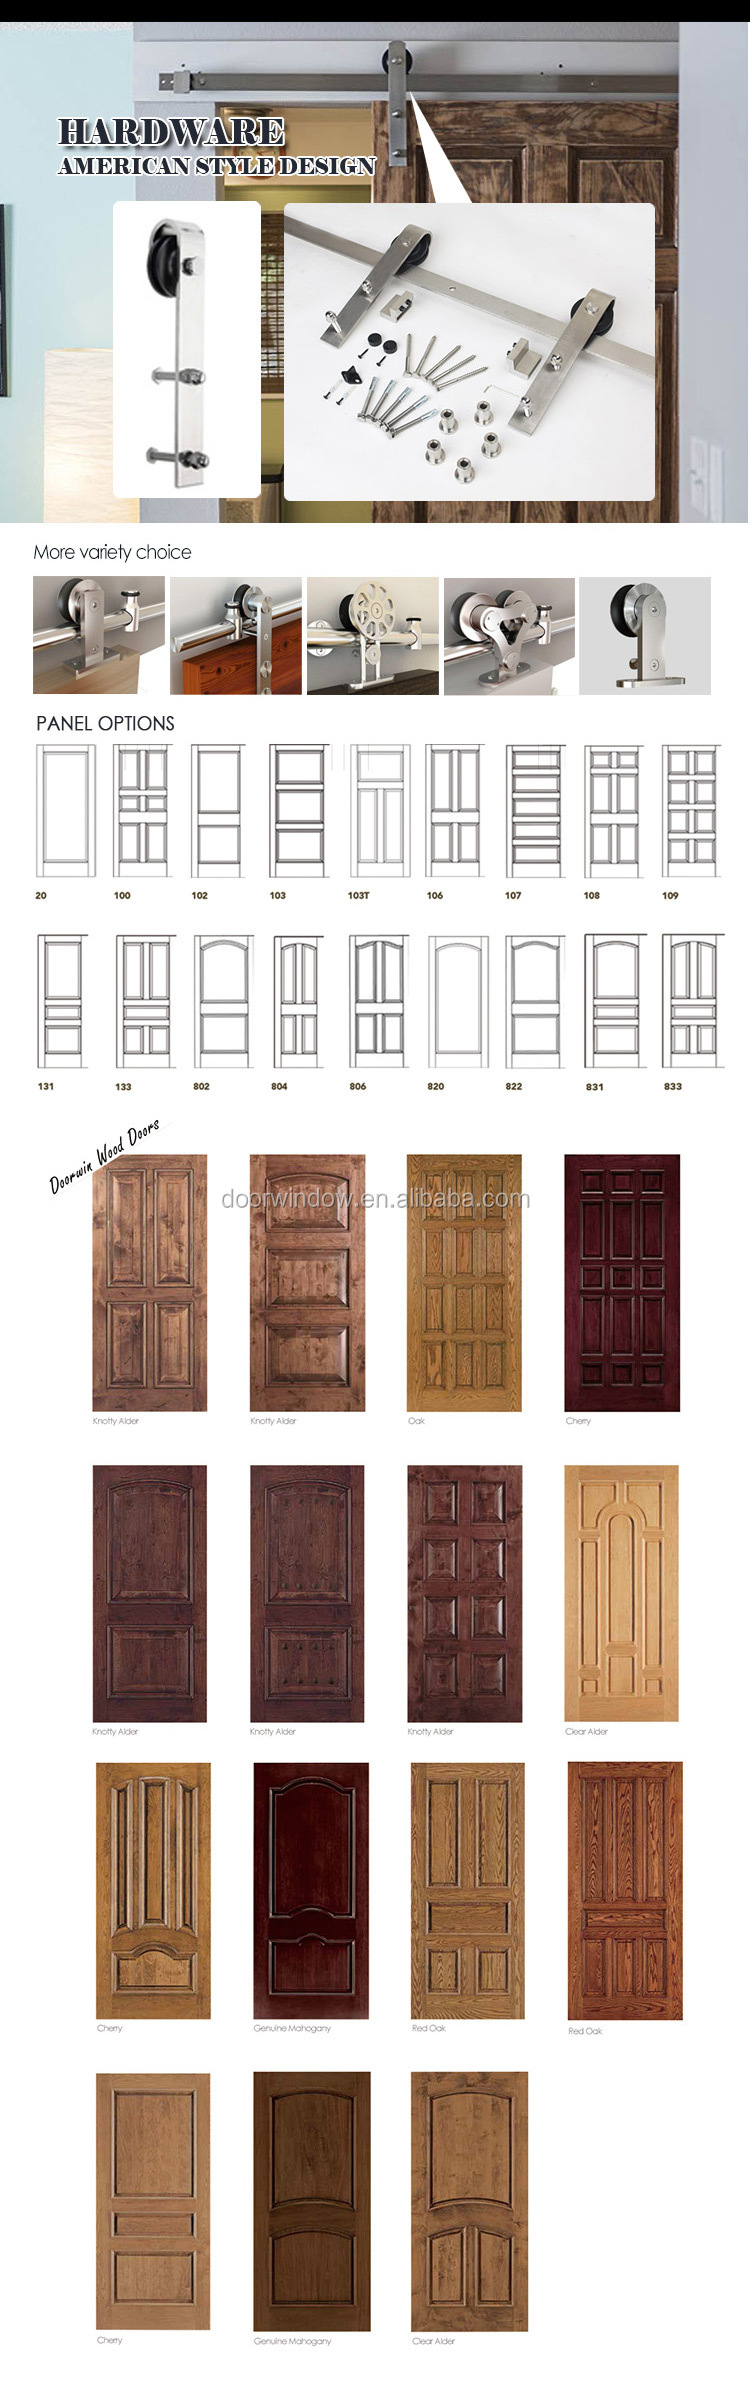 Fancy interior doors red oak wooden barn sliding door with stainless steel hardware